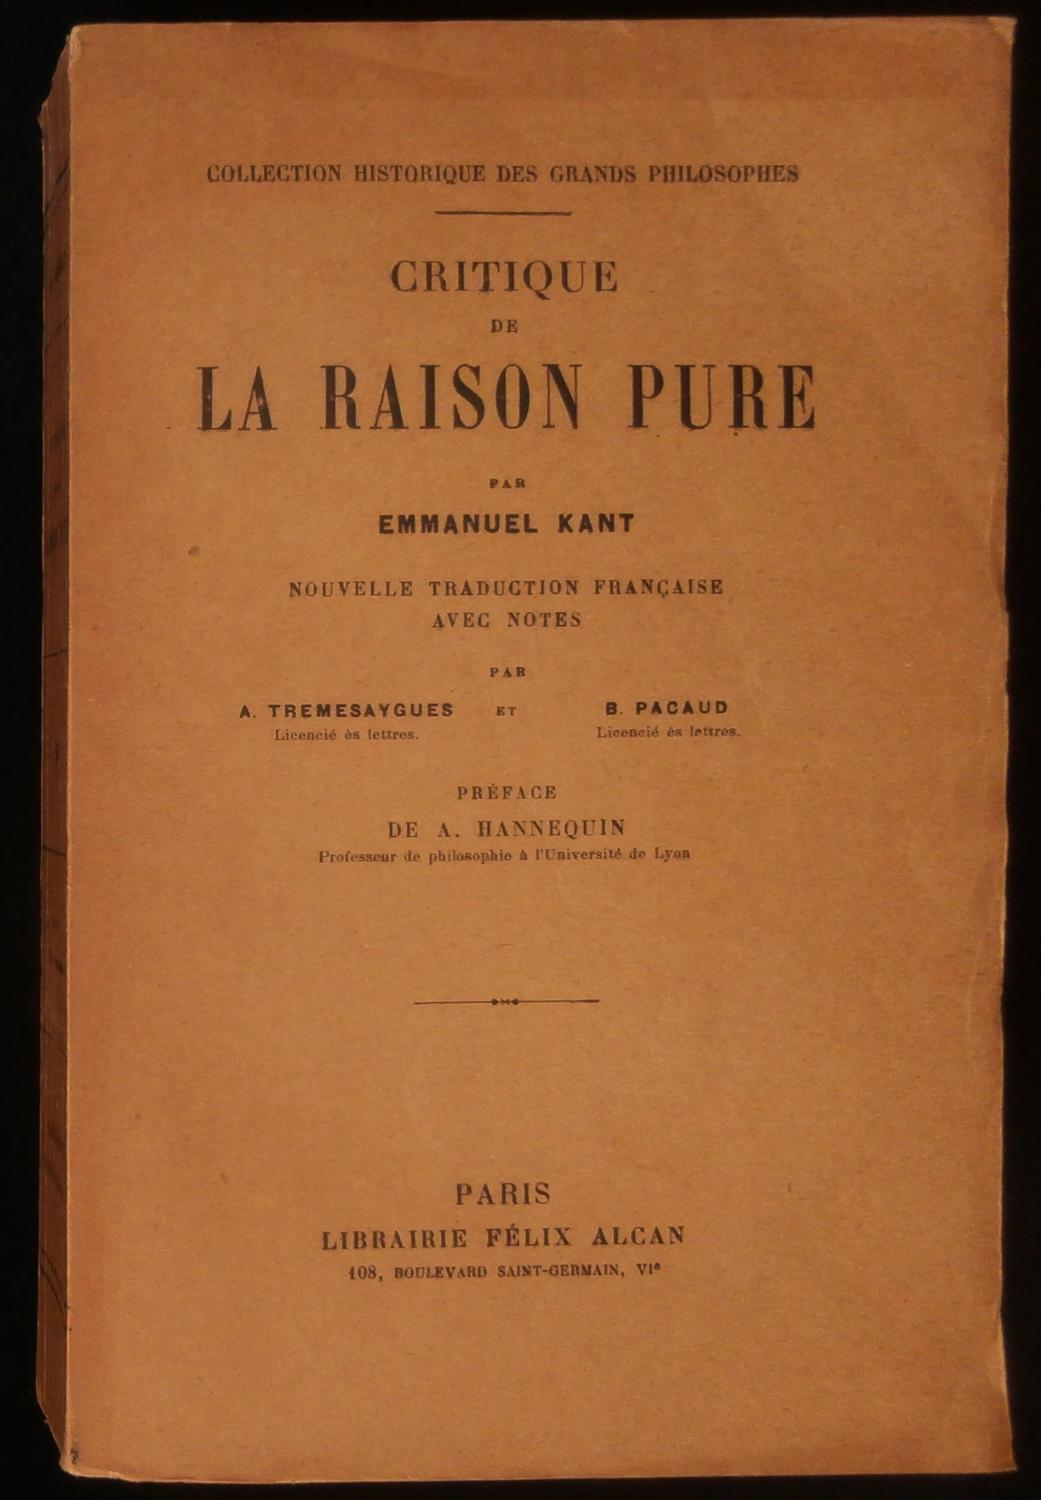 Critique de la raison pure - Alcan